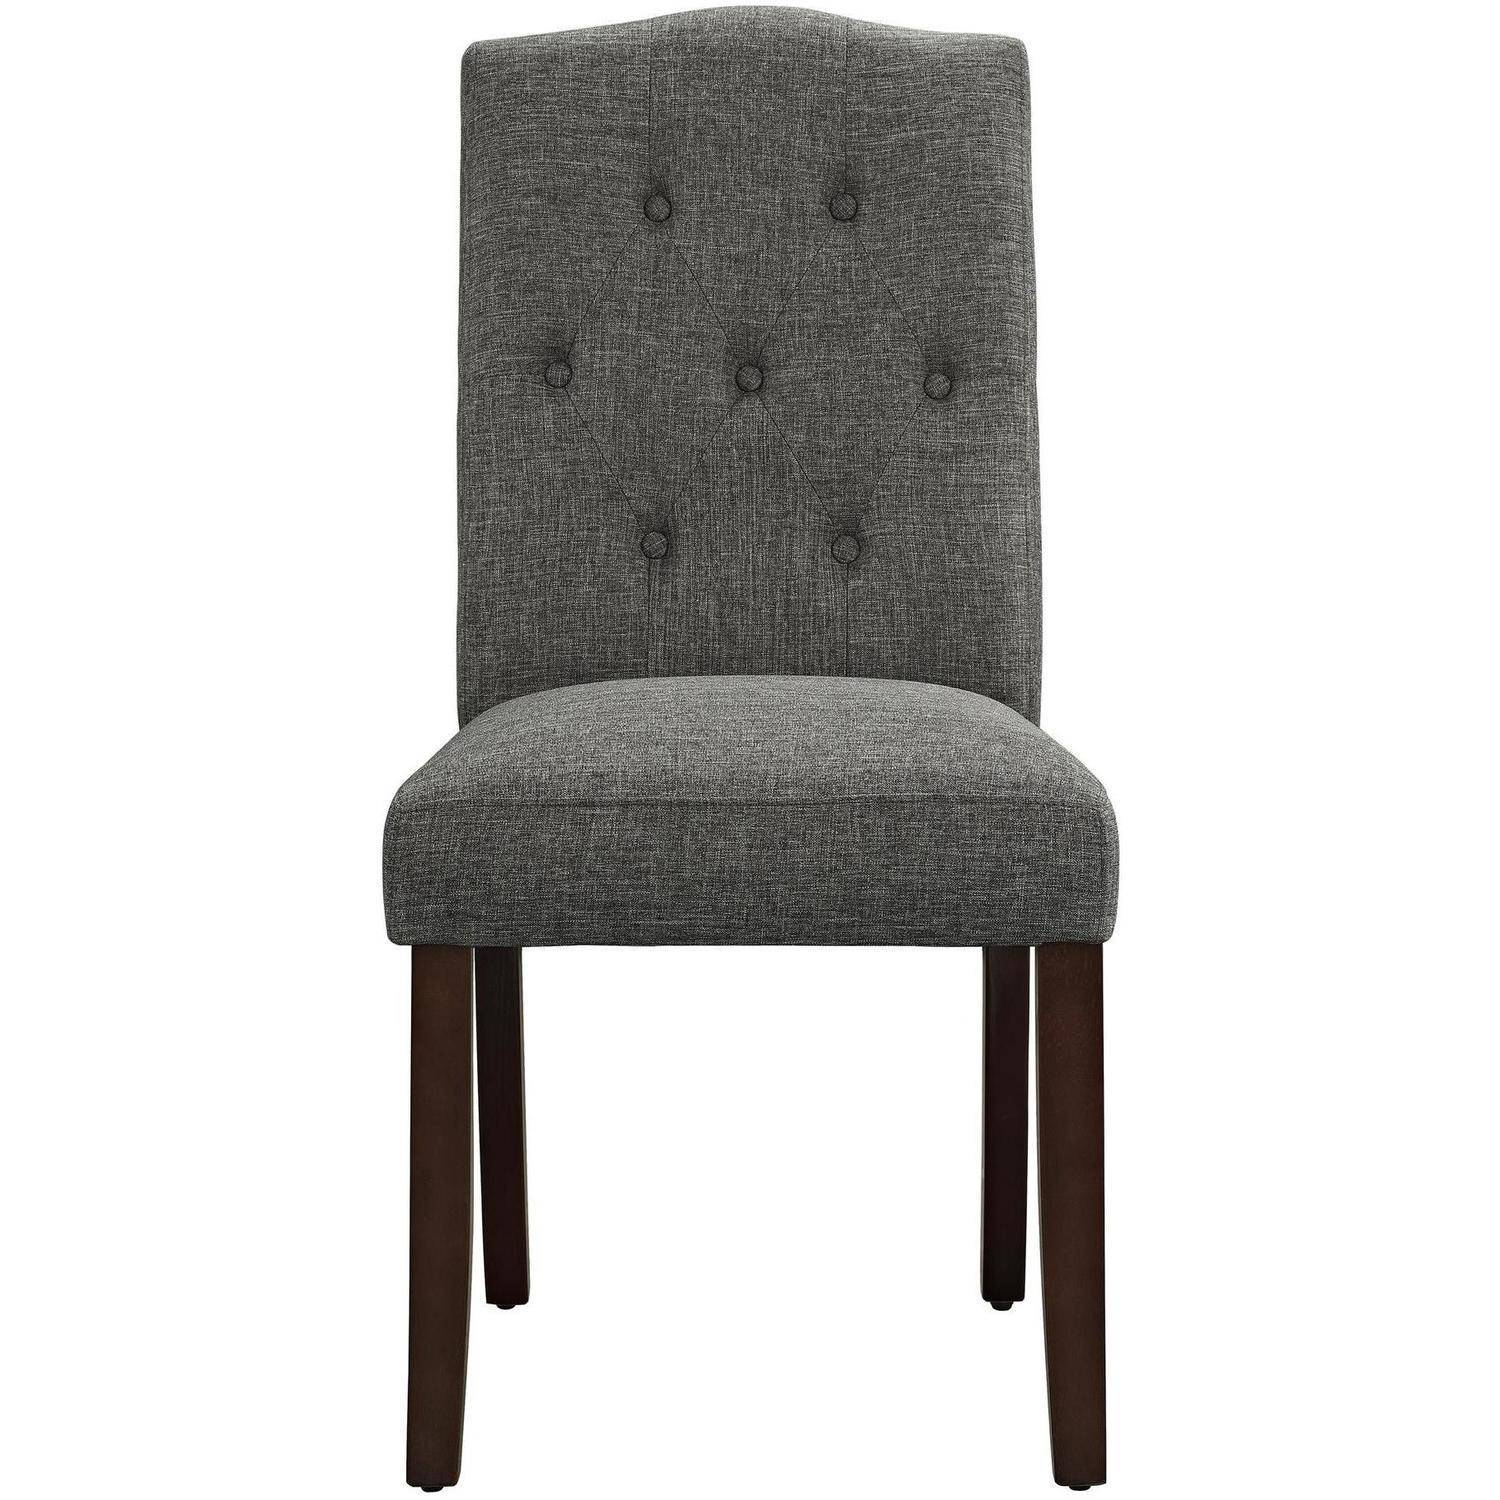 Dining room tufted dining chair upholstered side chairs for Dining room upholstered chairs